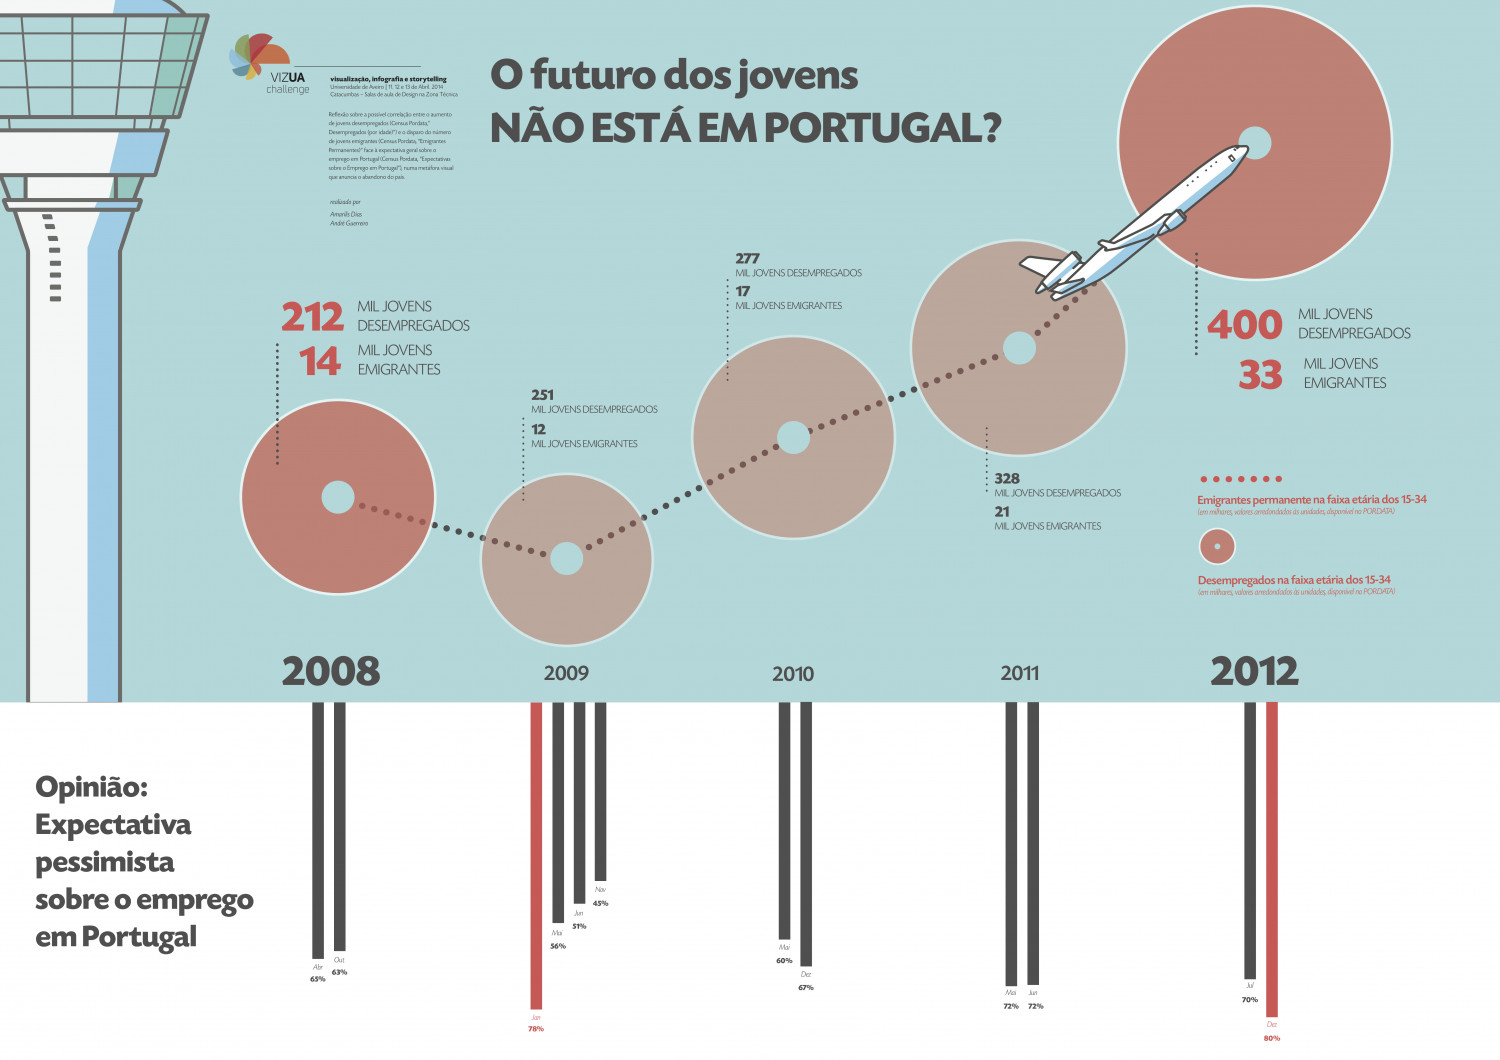 the future of Portugal's youth Infographic